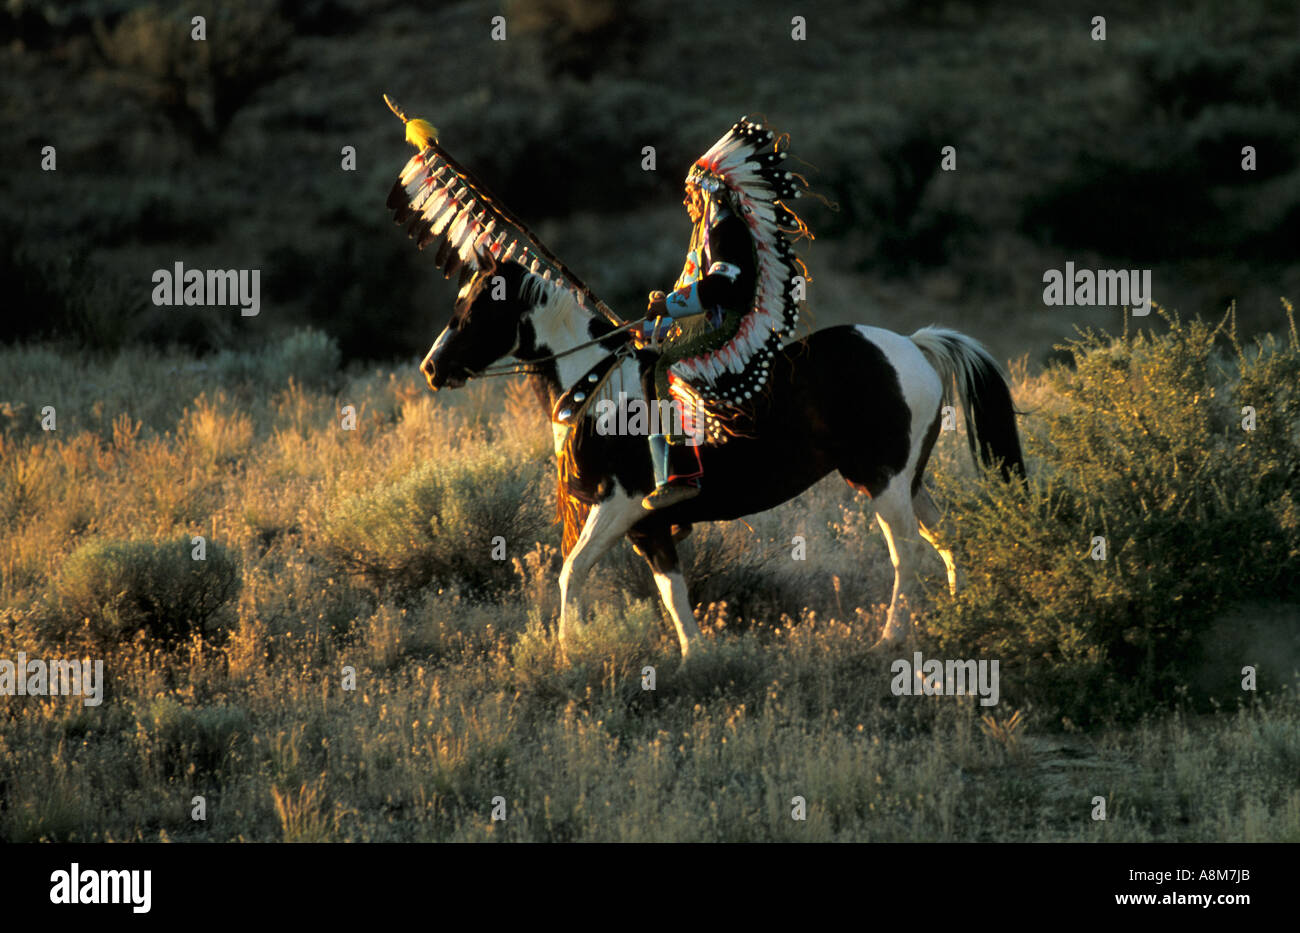 USA IDAHO Native American Indian Man in tradtional dress riding a painted horse Shoshone Bannock Tribe MR - Stock Image